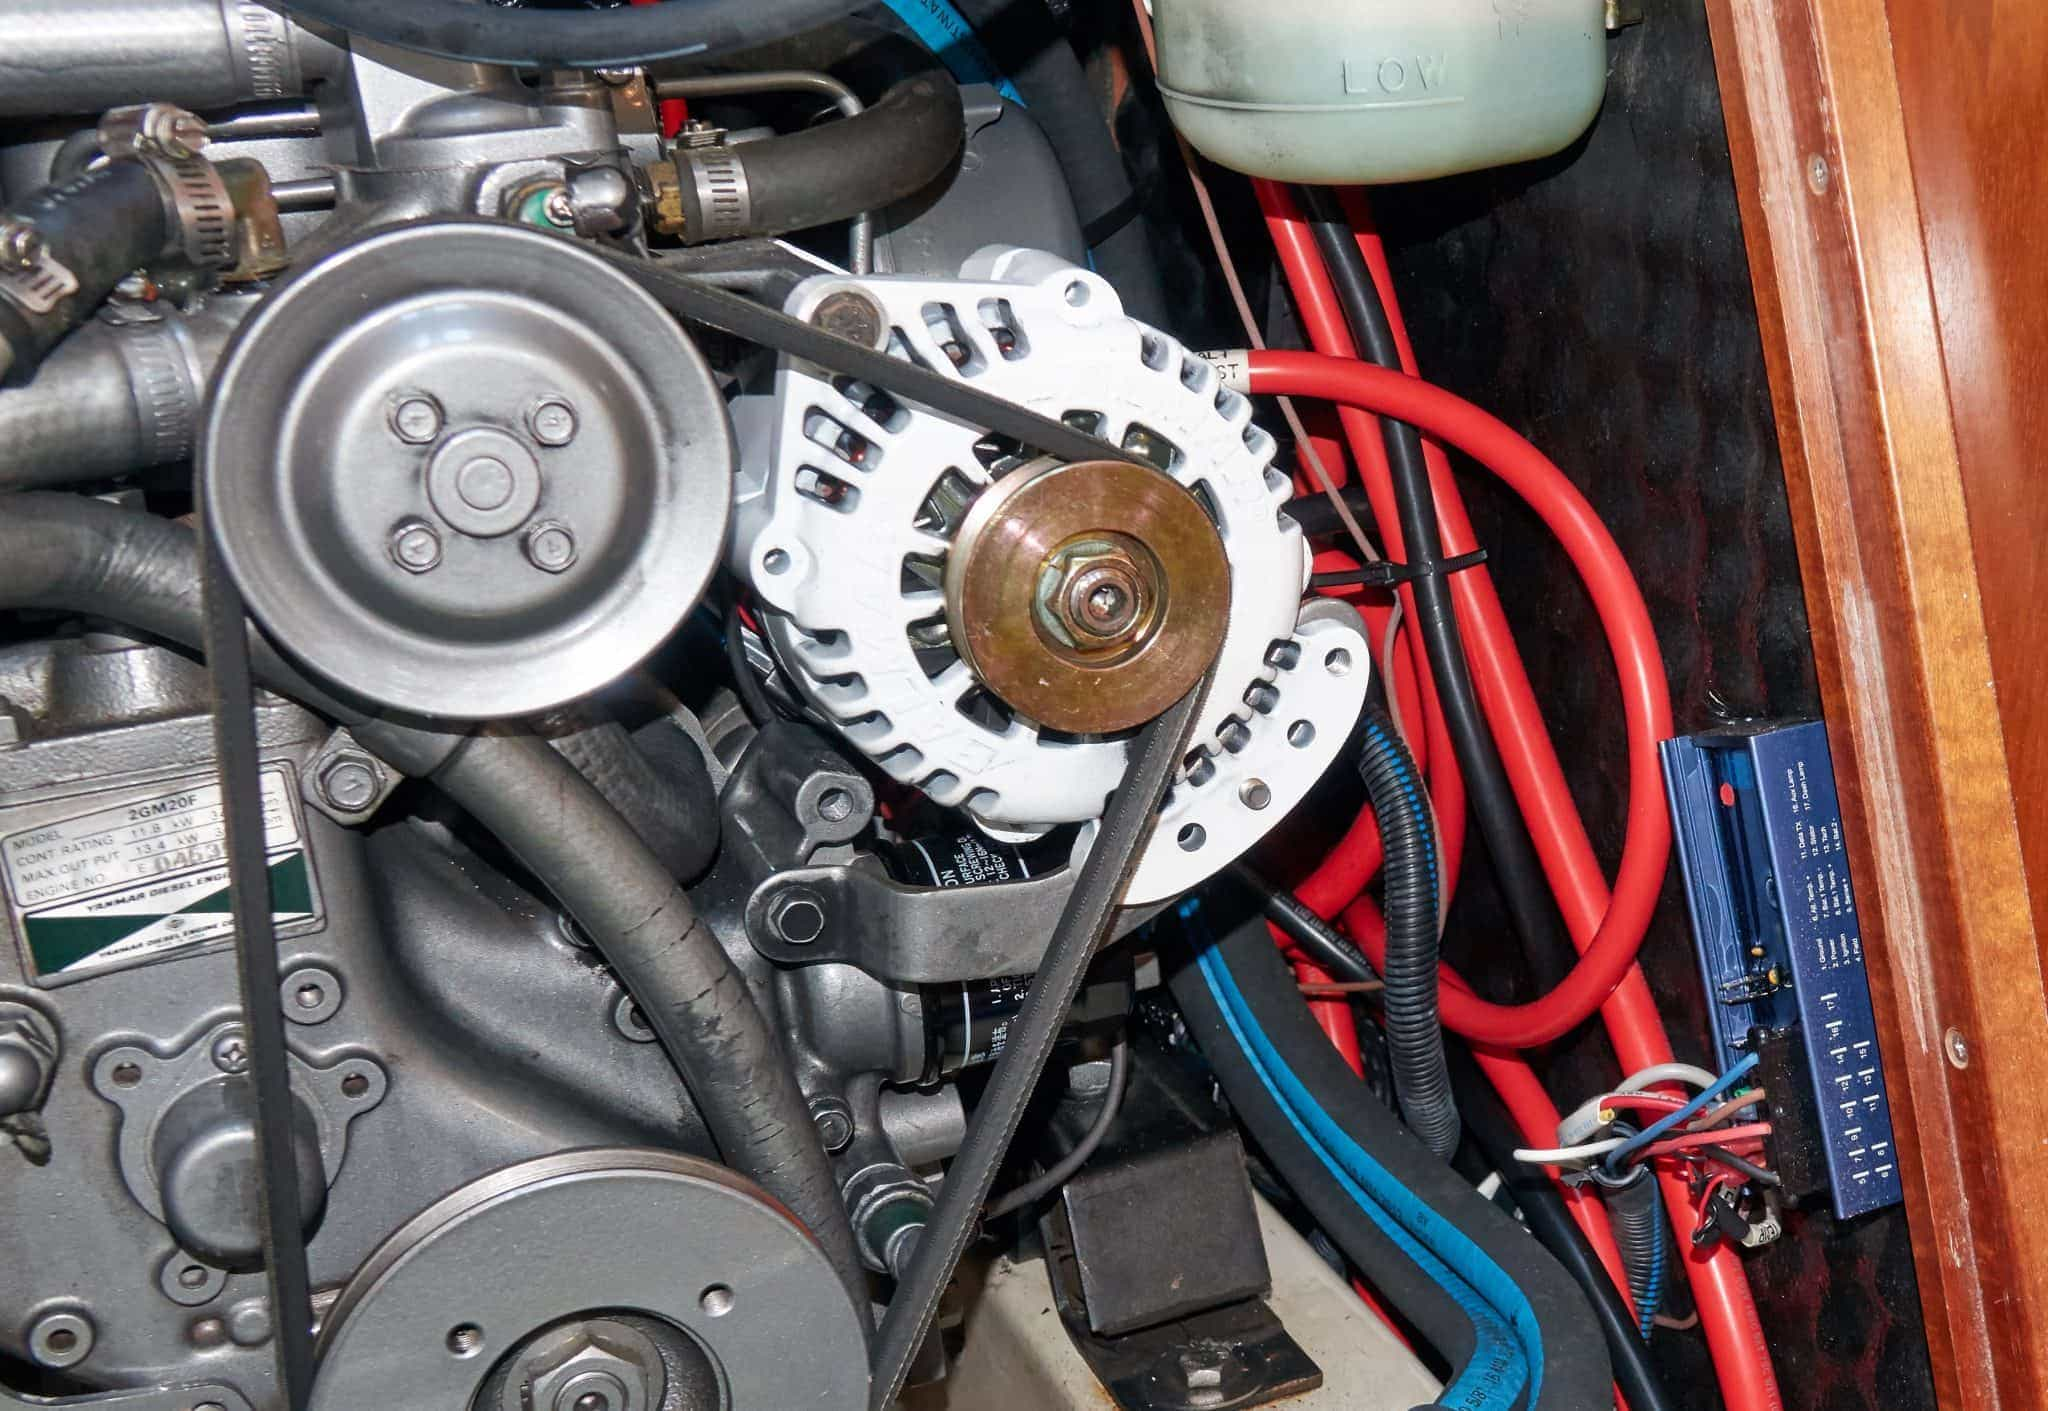 Balmar alternator and regulator